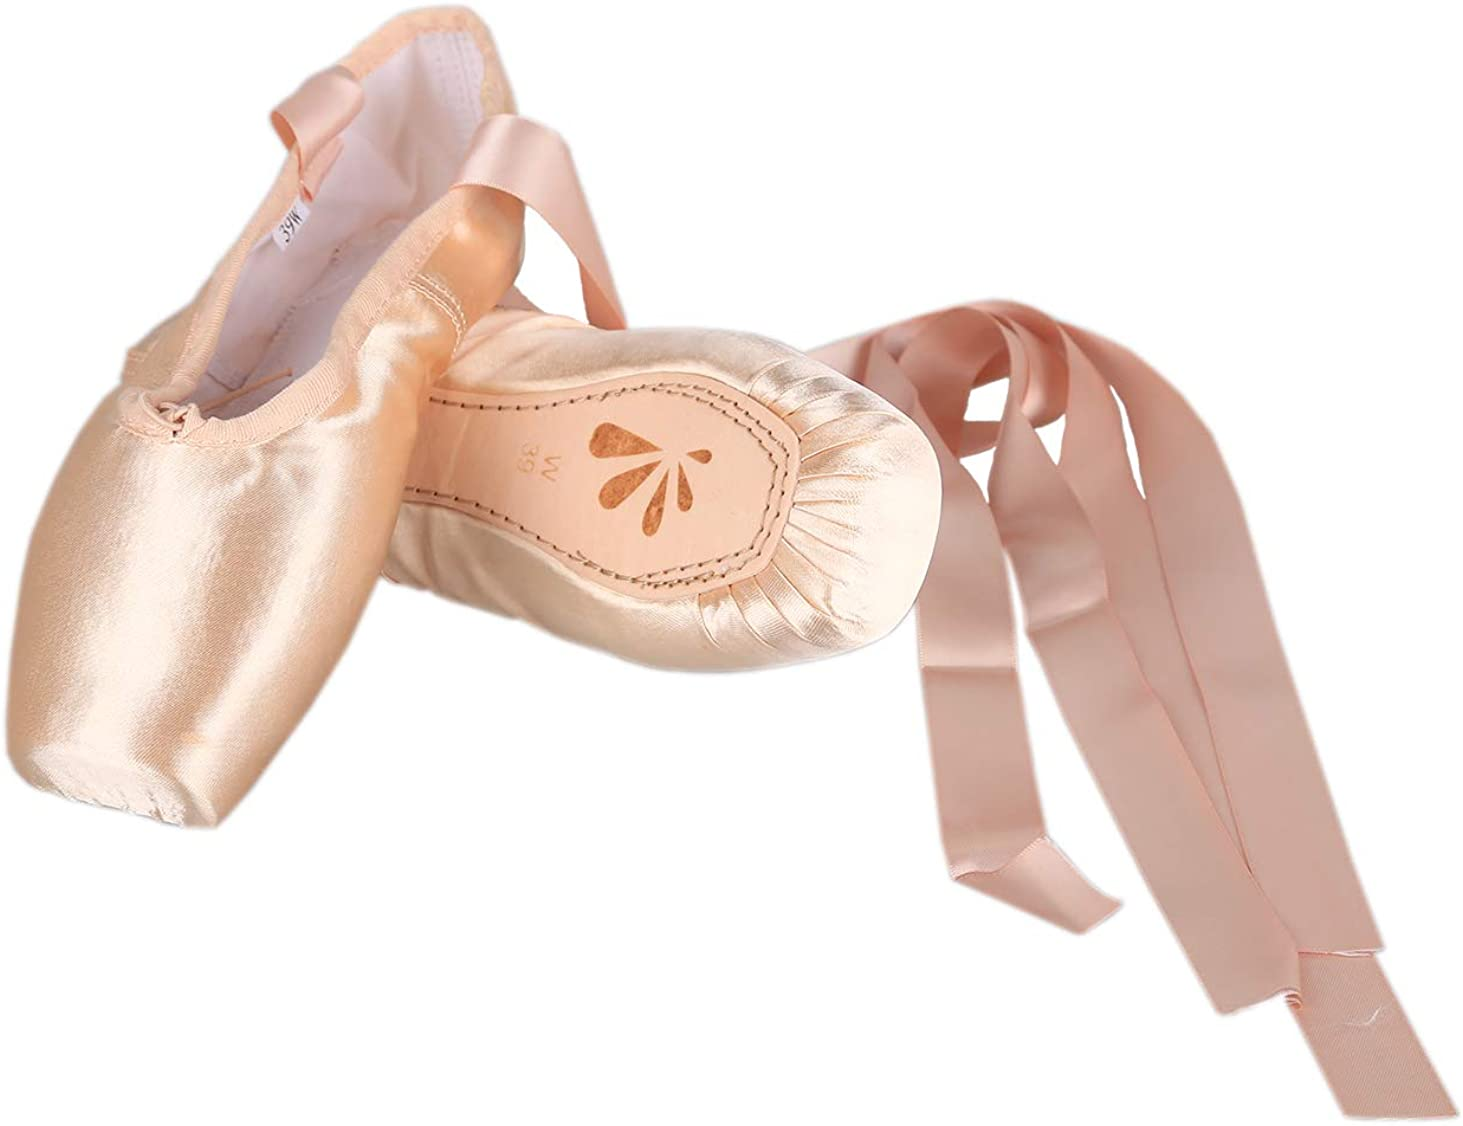 DANCEWOOD Ballet Pointe Satin Shoes Professional Dancing Slippers Pink Ballet Flats with Sewed Ribbons for Girls Women